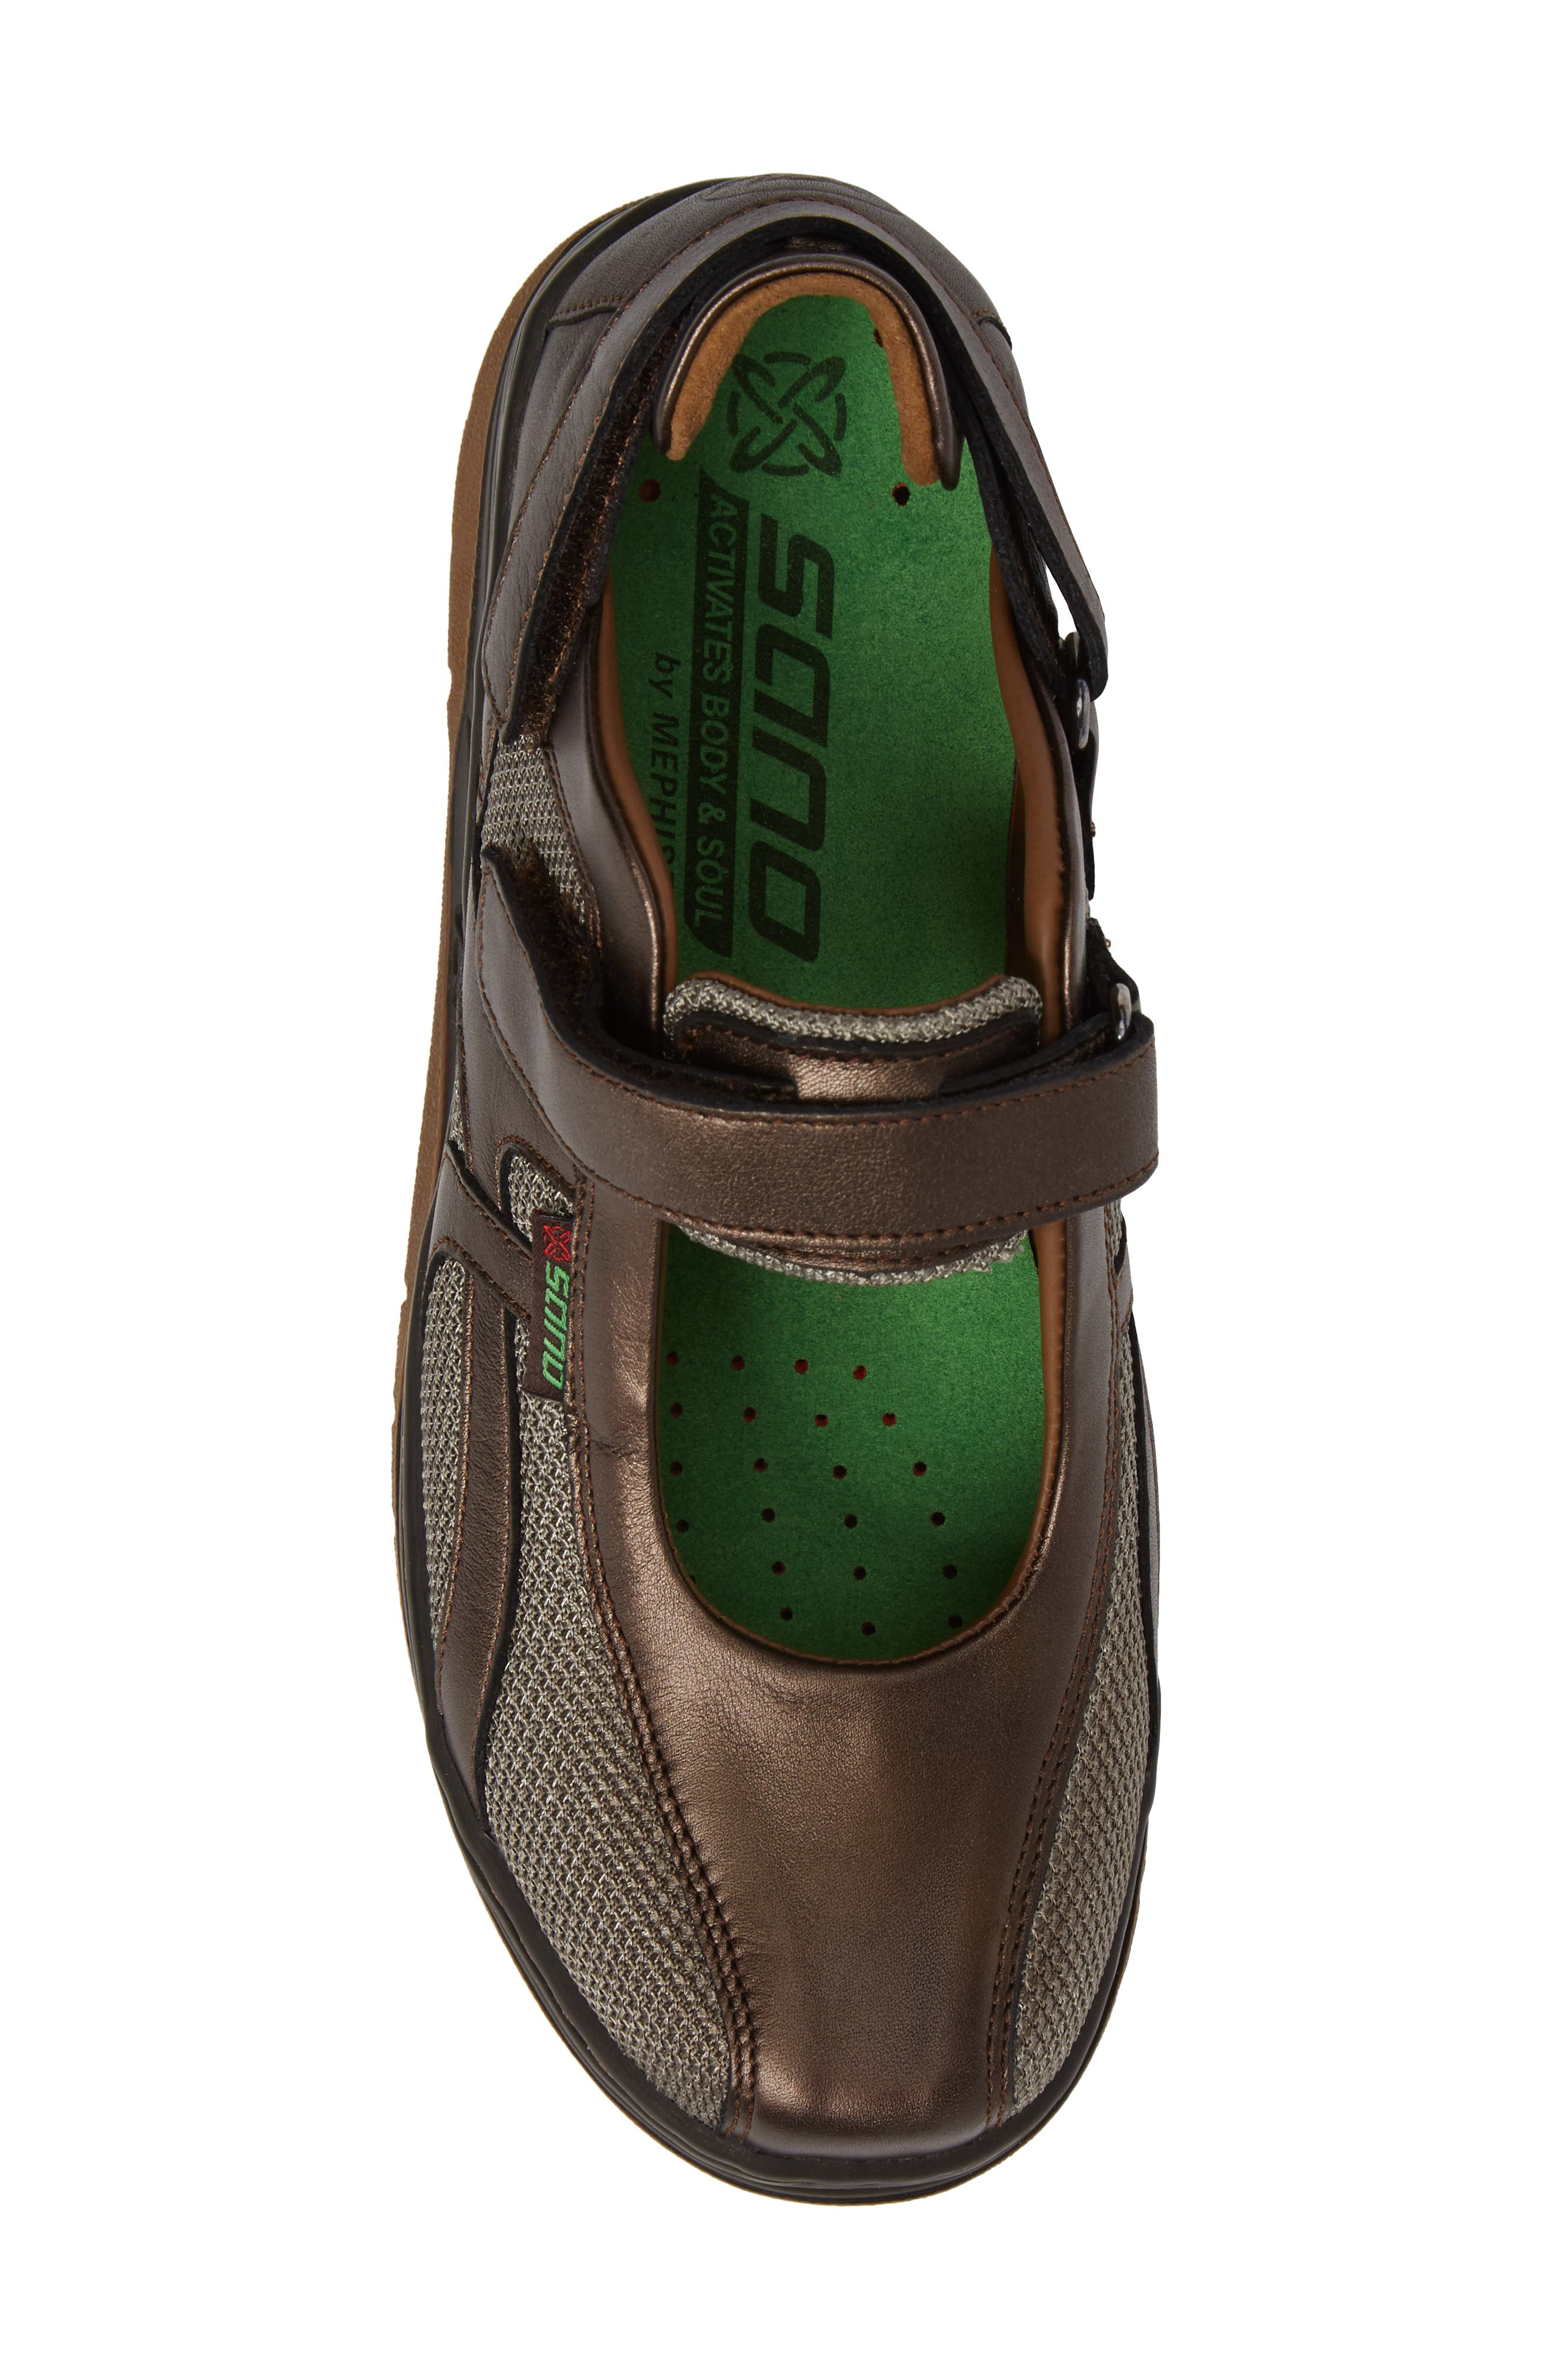 Sano by Mephisto 'Excess' Walking Shoe,                             Alternate thumbnail 15, color,